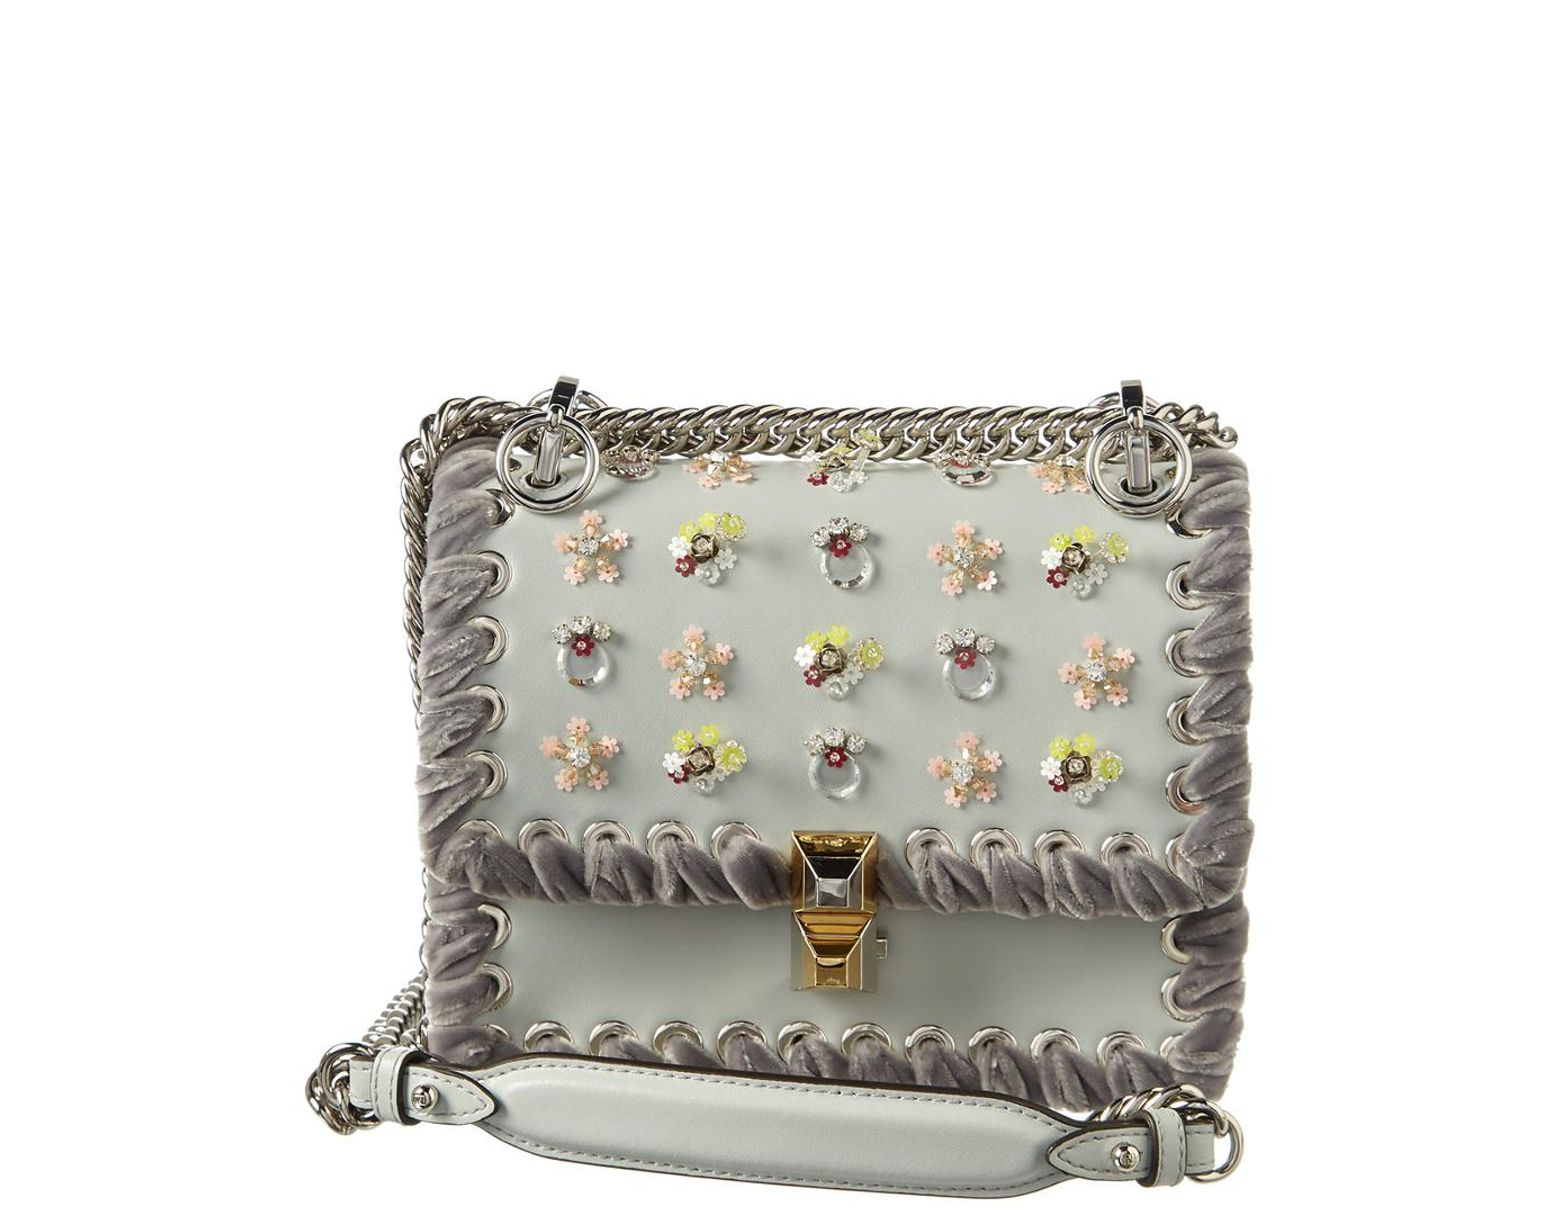 335c6d5ee Fendi Kan I Embellished Whipstitch Small Leather Satchel in Gray - Lyst